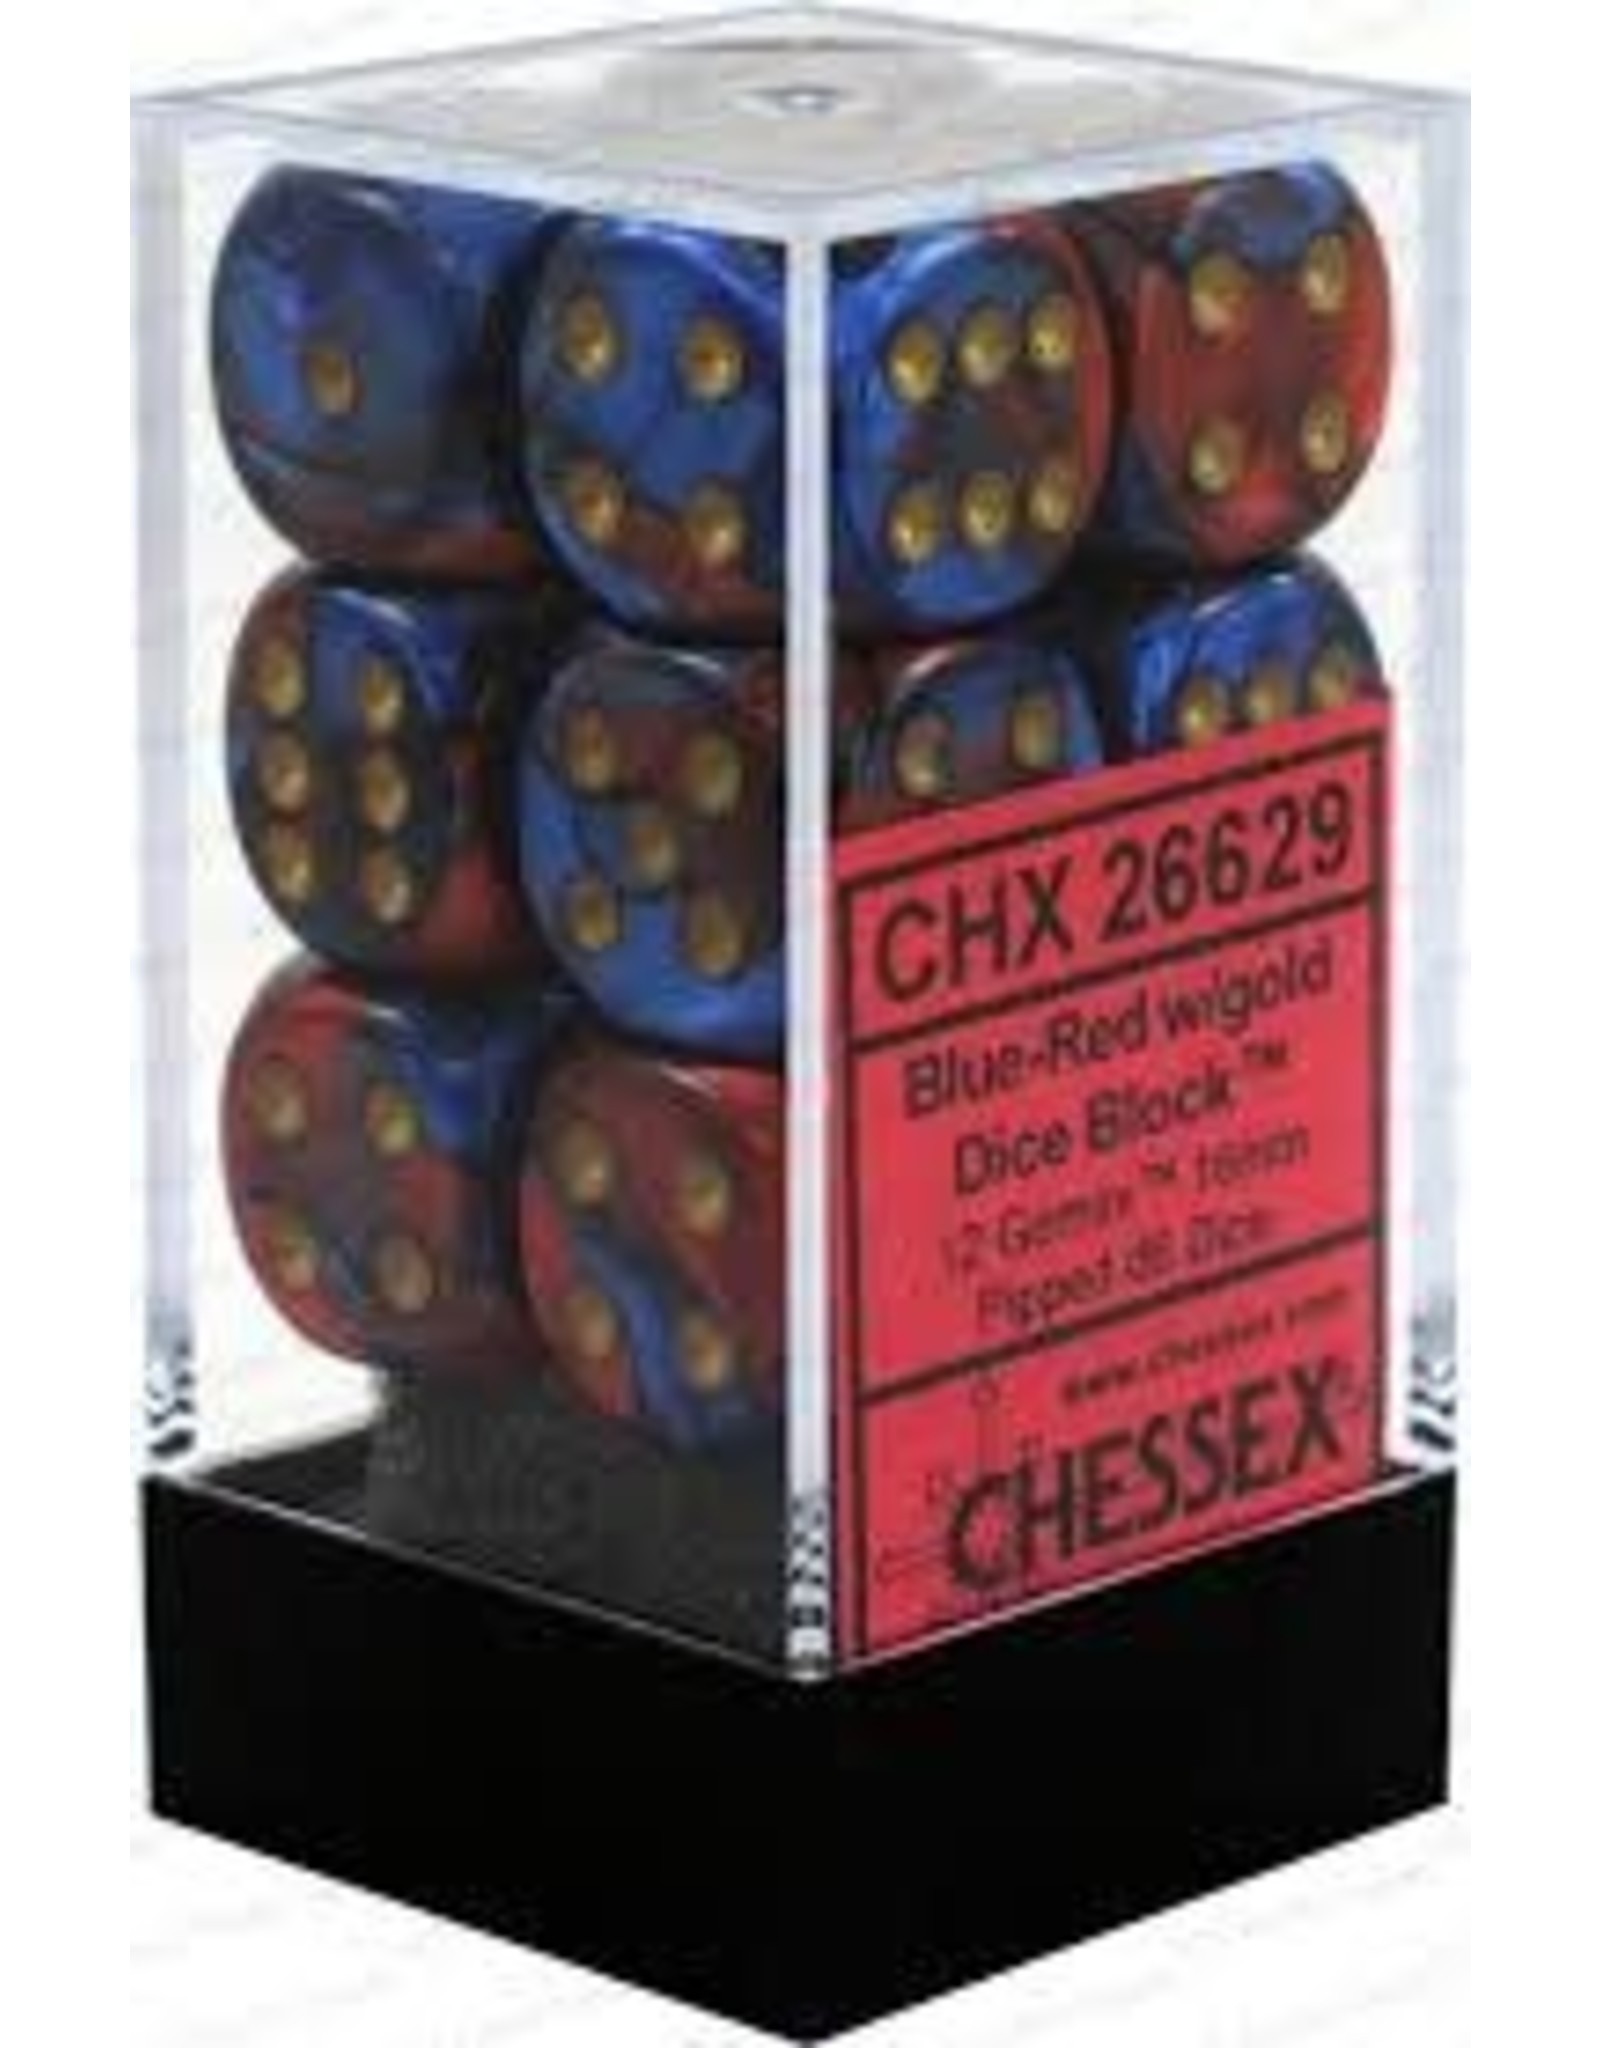 CHESSEX CHX 26629 16MM D6 DICE BLOCK GEMINI BLUE RED W/GOLD